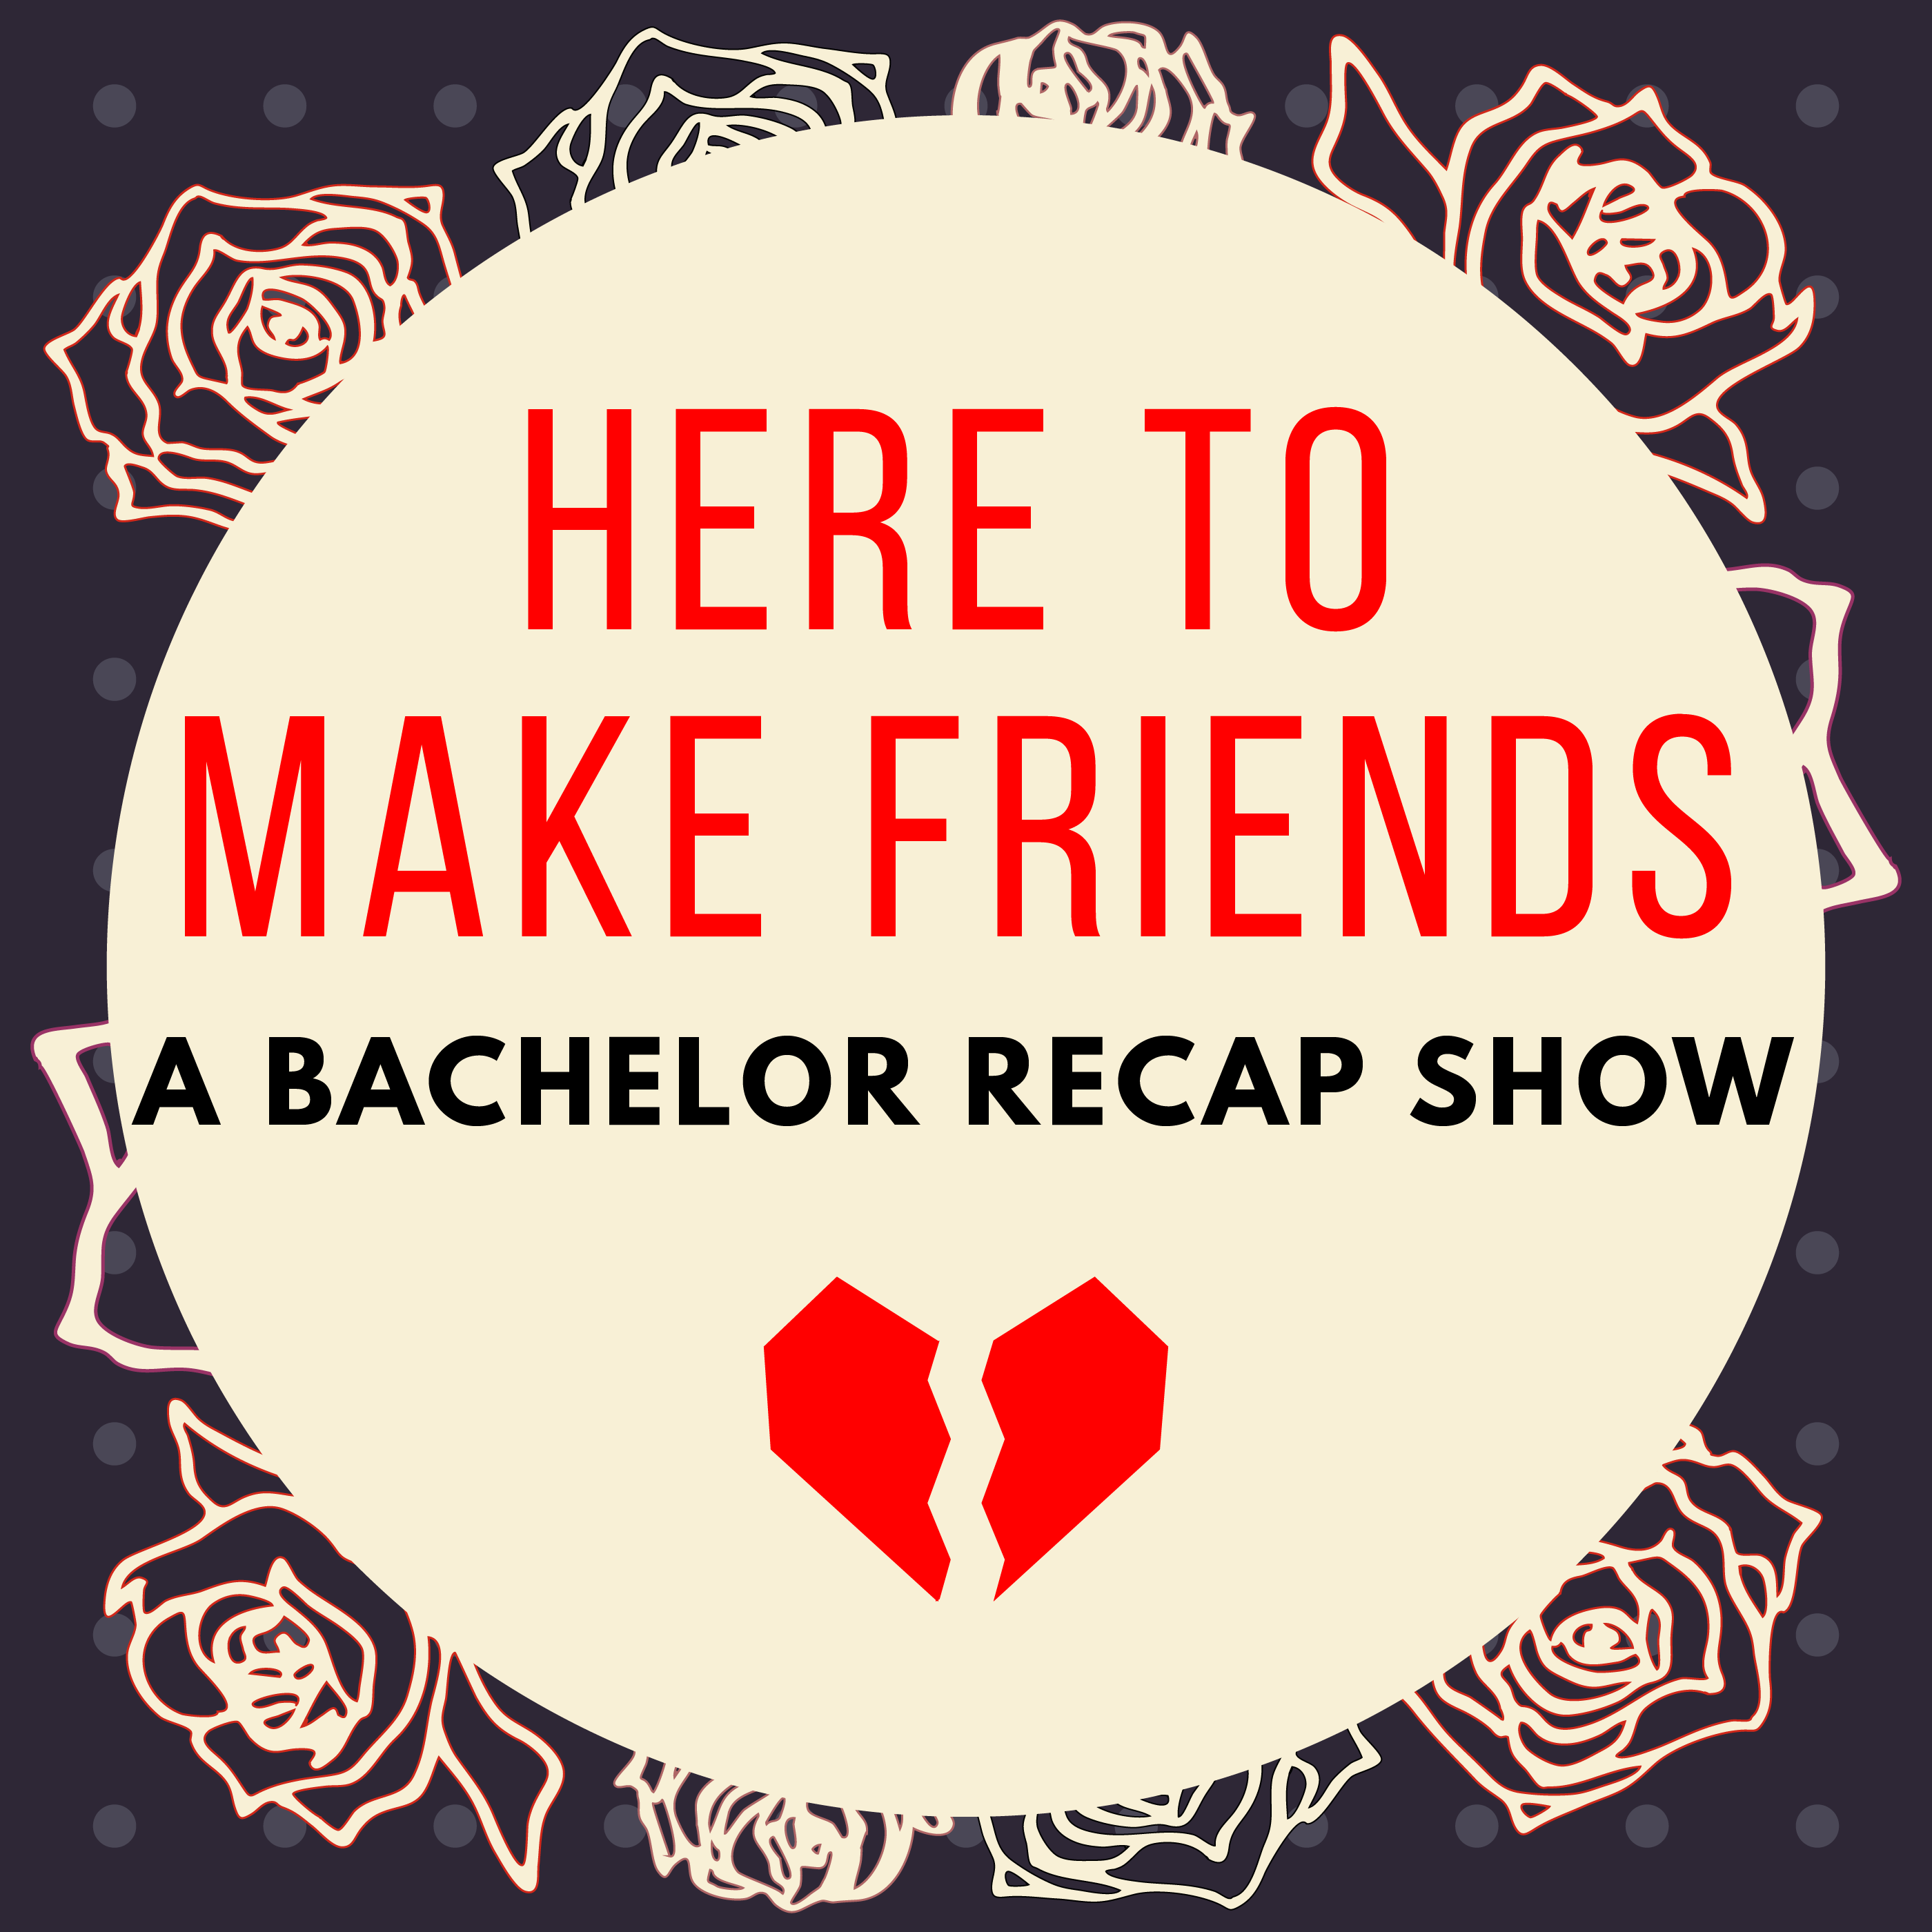 Here To Make Friends - A Bachelor Recap Show